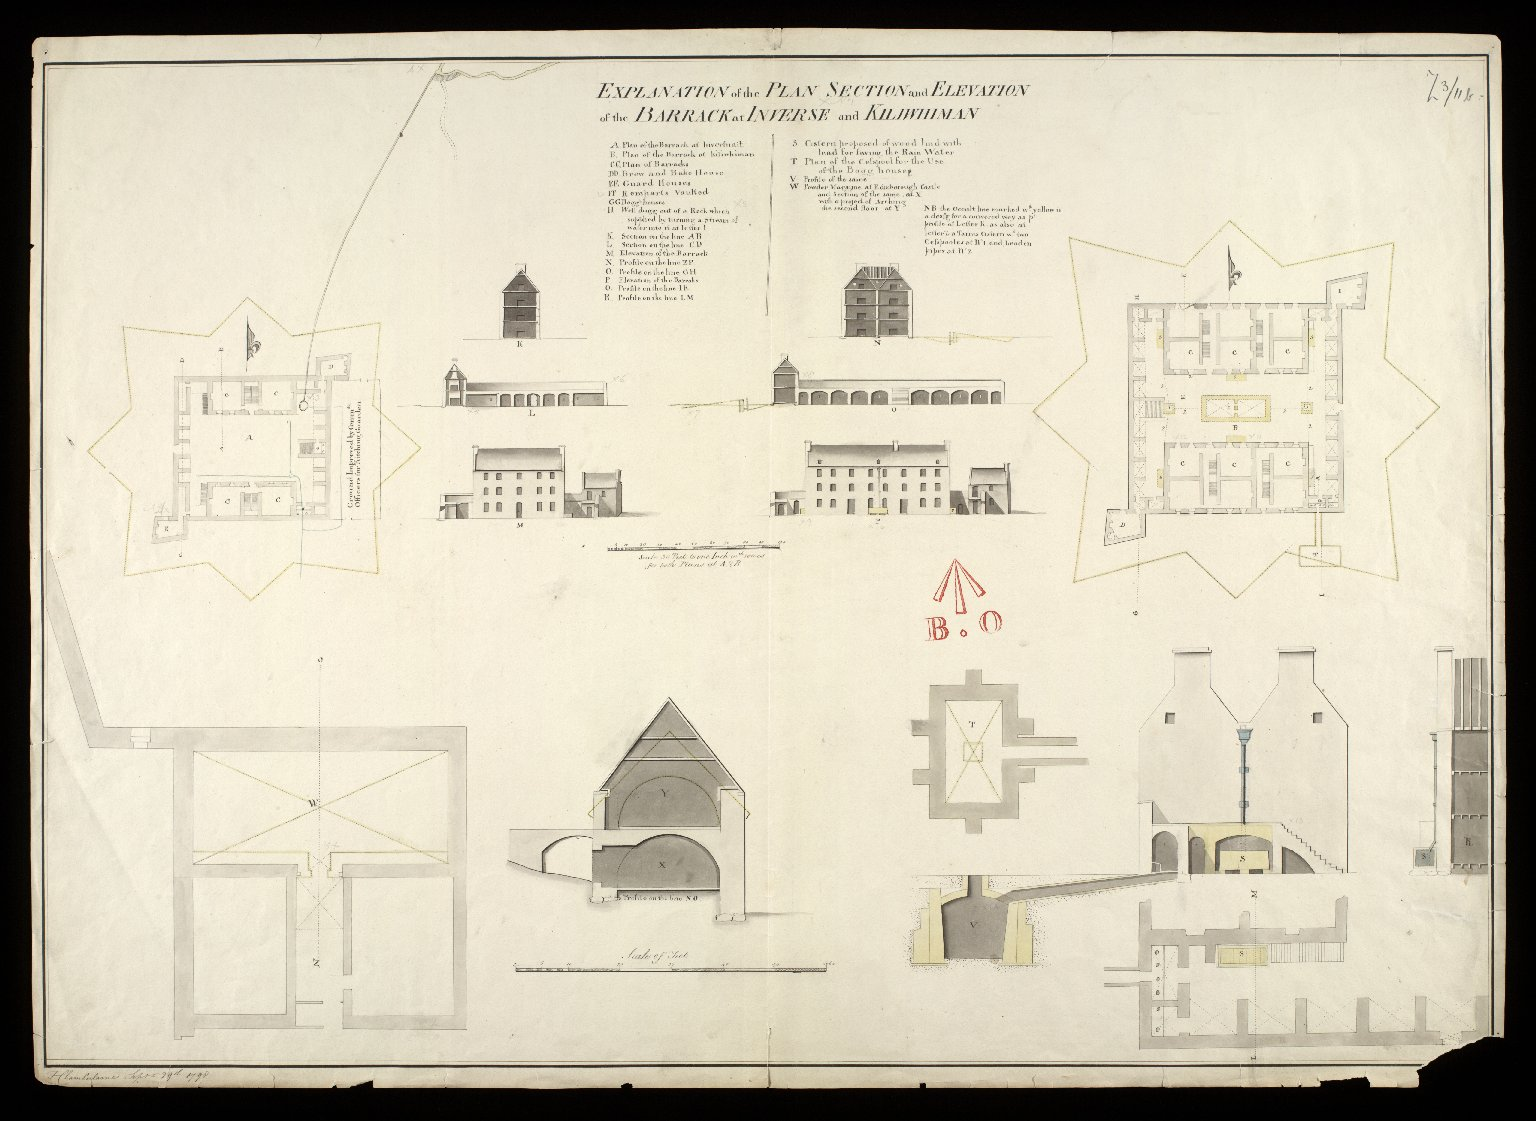 Plan, section and elevation of the barrack at Inveersnait [i.e. Inversnaid] & Kiliwhiman [i.e. Kiliwhimen] [with] Explanation; powder magasine at Edinbgh. Castle and section of the same at x; with a project of arching the second floor at y [1720] [copy] [1 of 1]